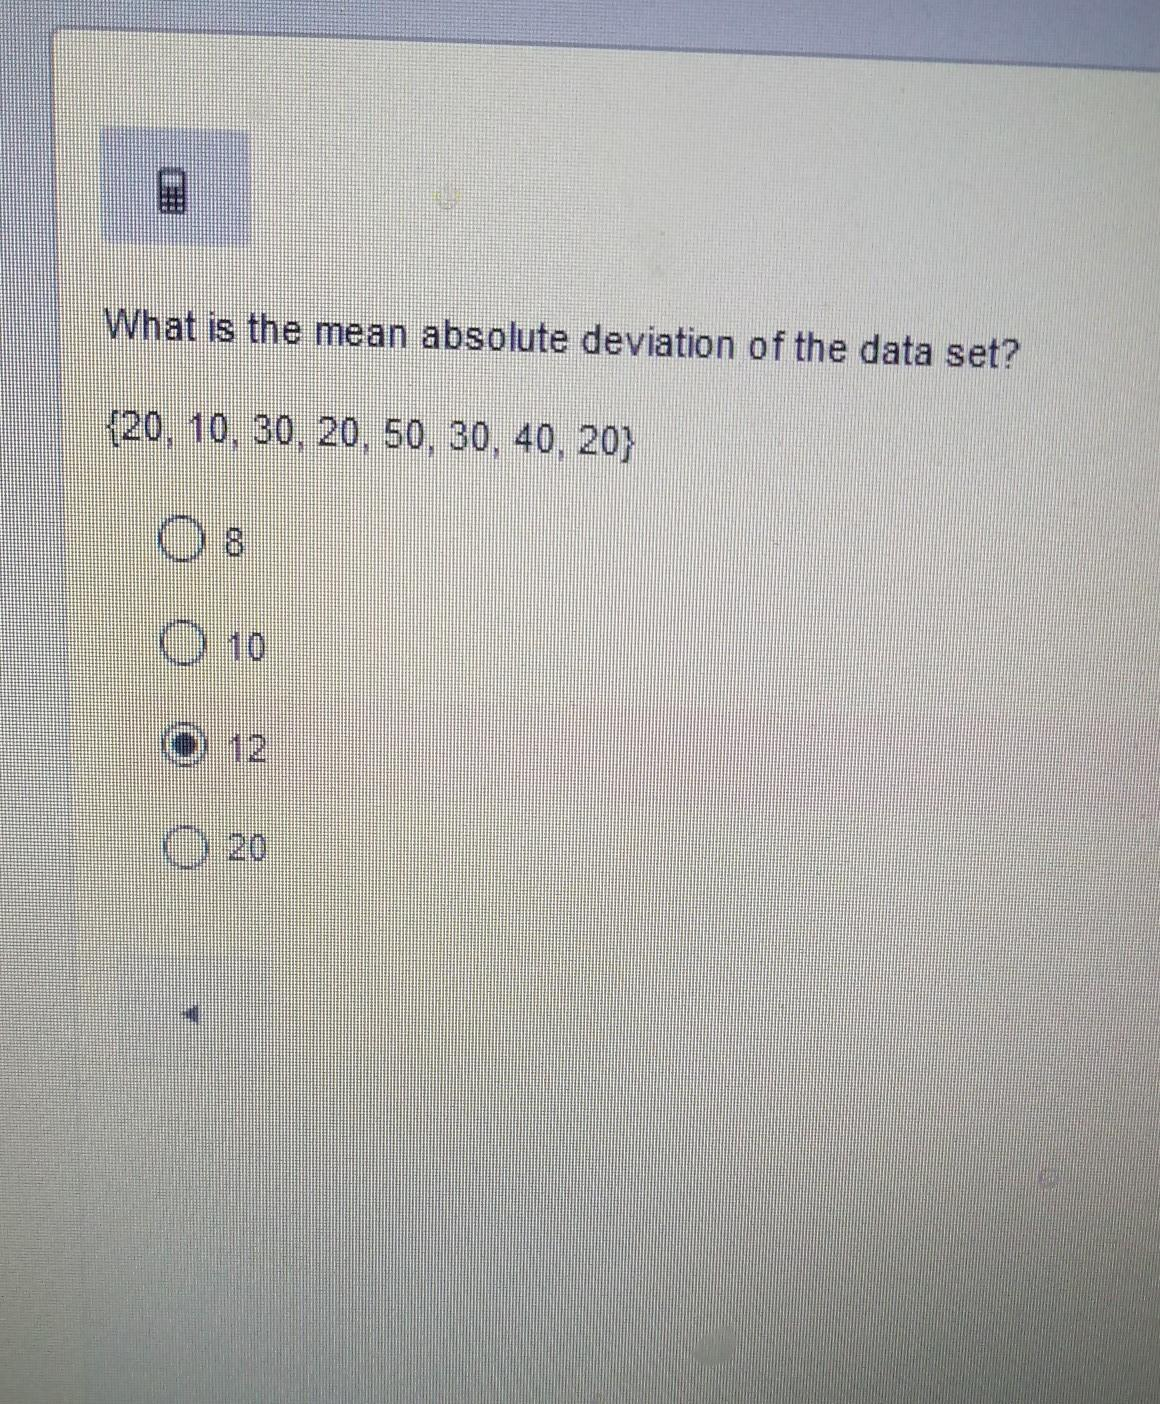 What Is The Mean Absolute Deviation Of The Data Set